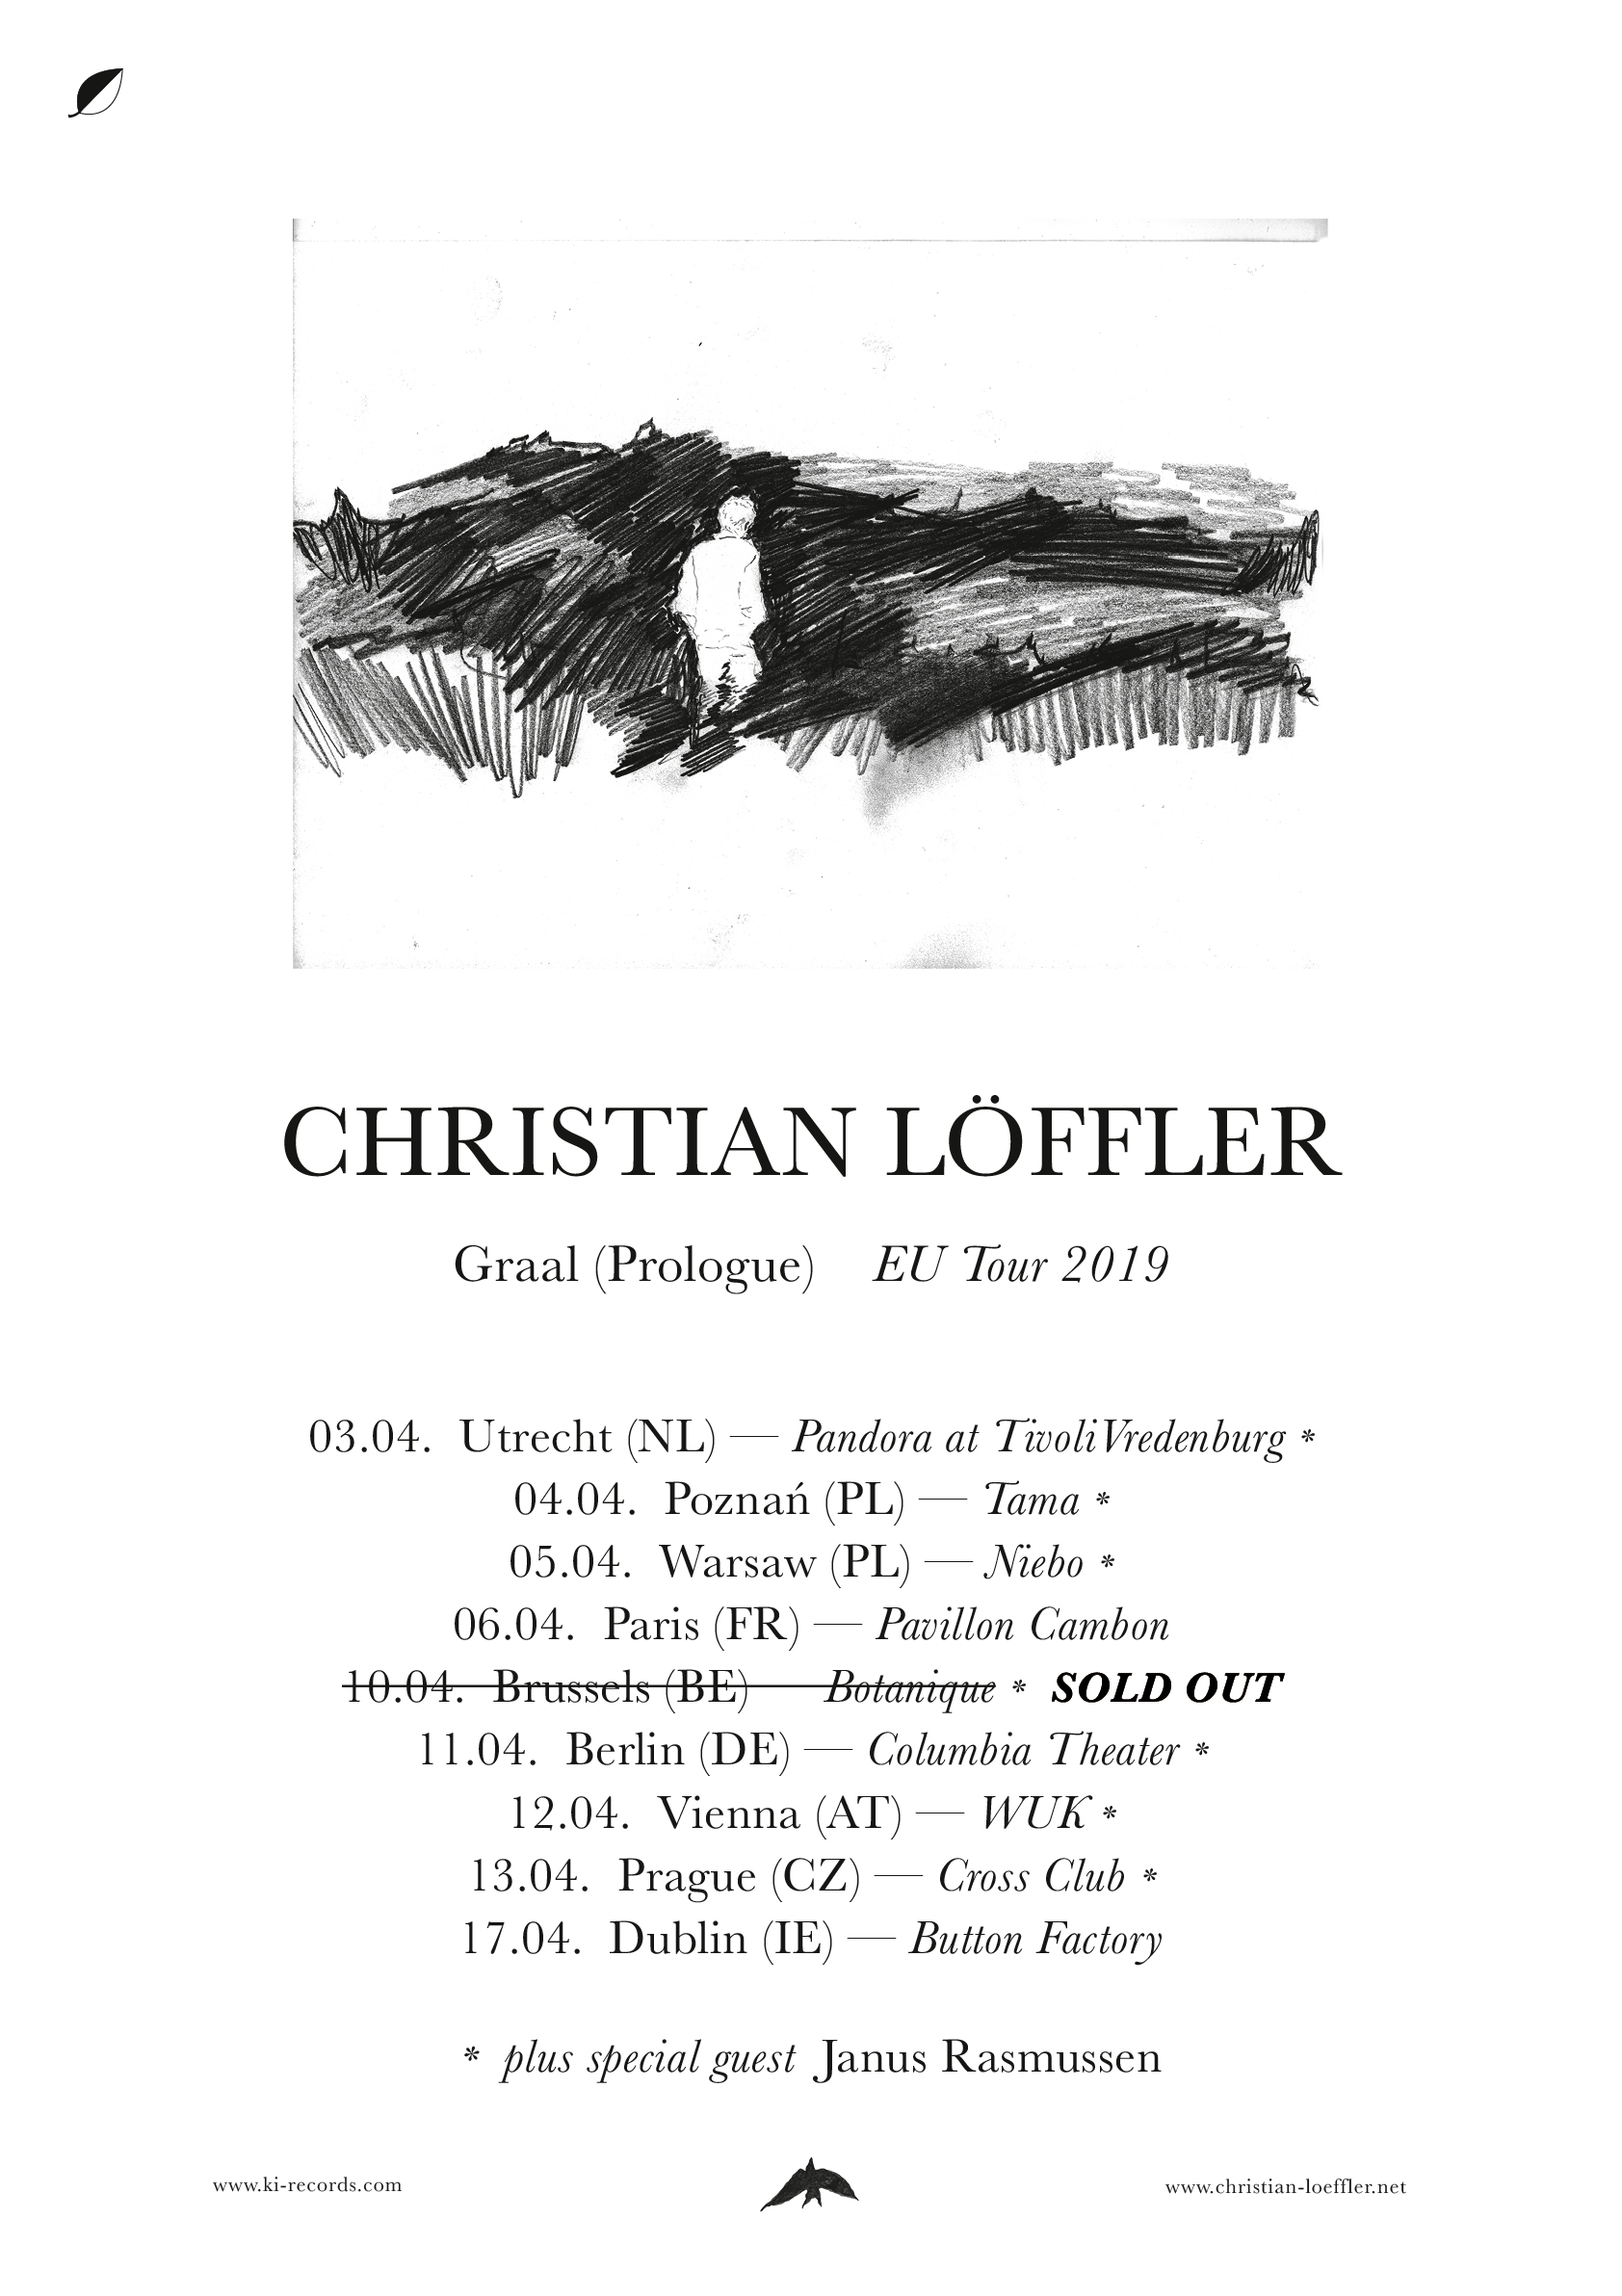 Christian Löffler - Graal Prologue_A1 EU 2019 Tour Poster_UK_WEB_v2.jpg